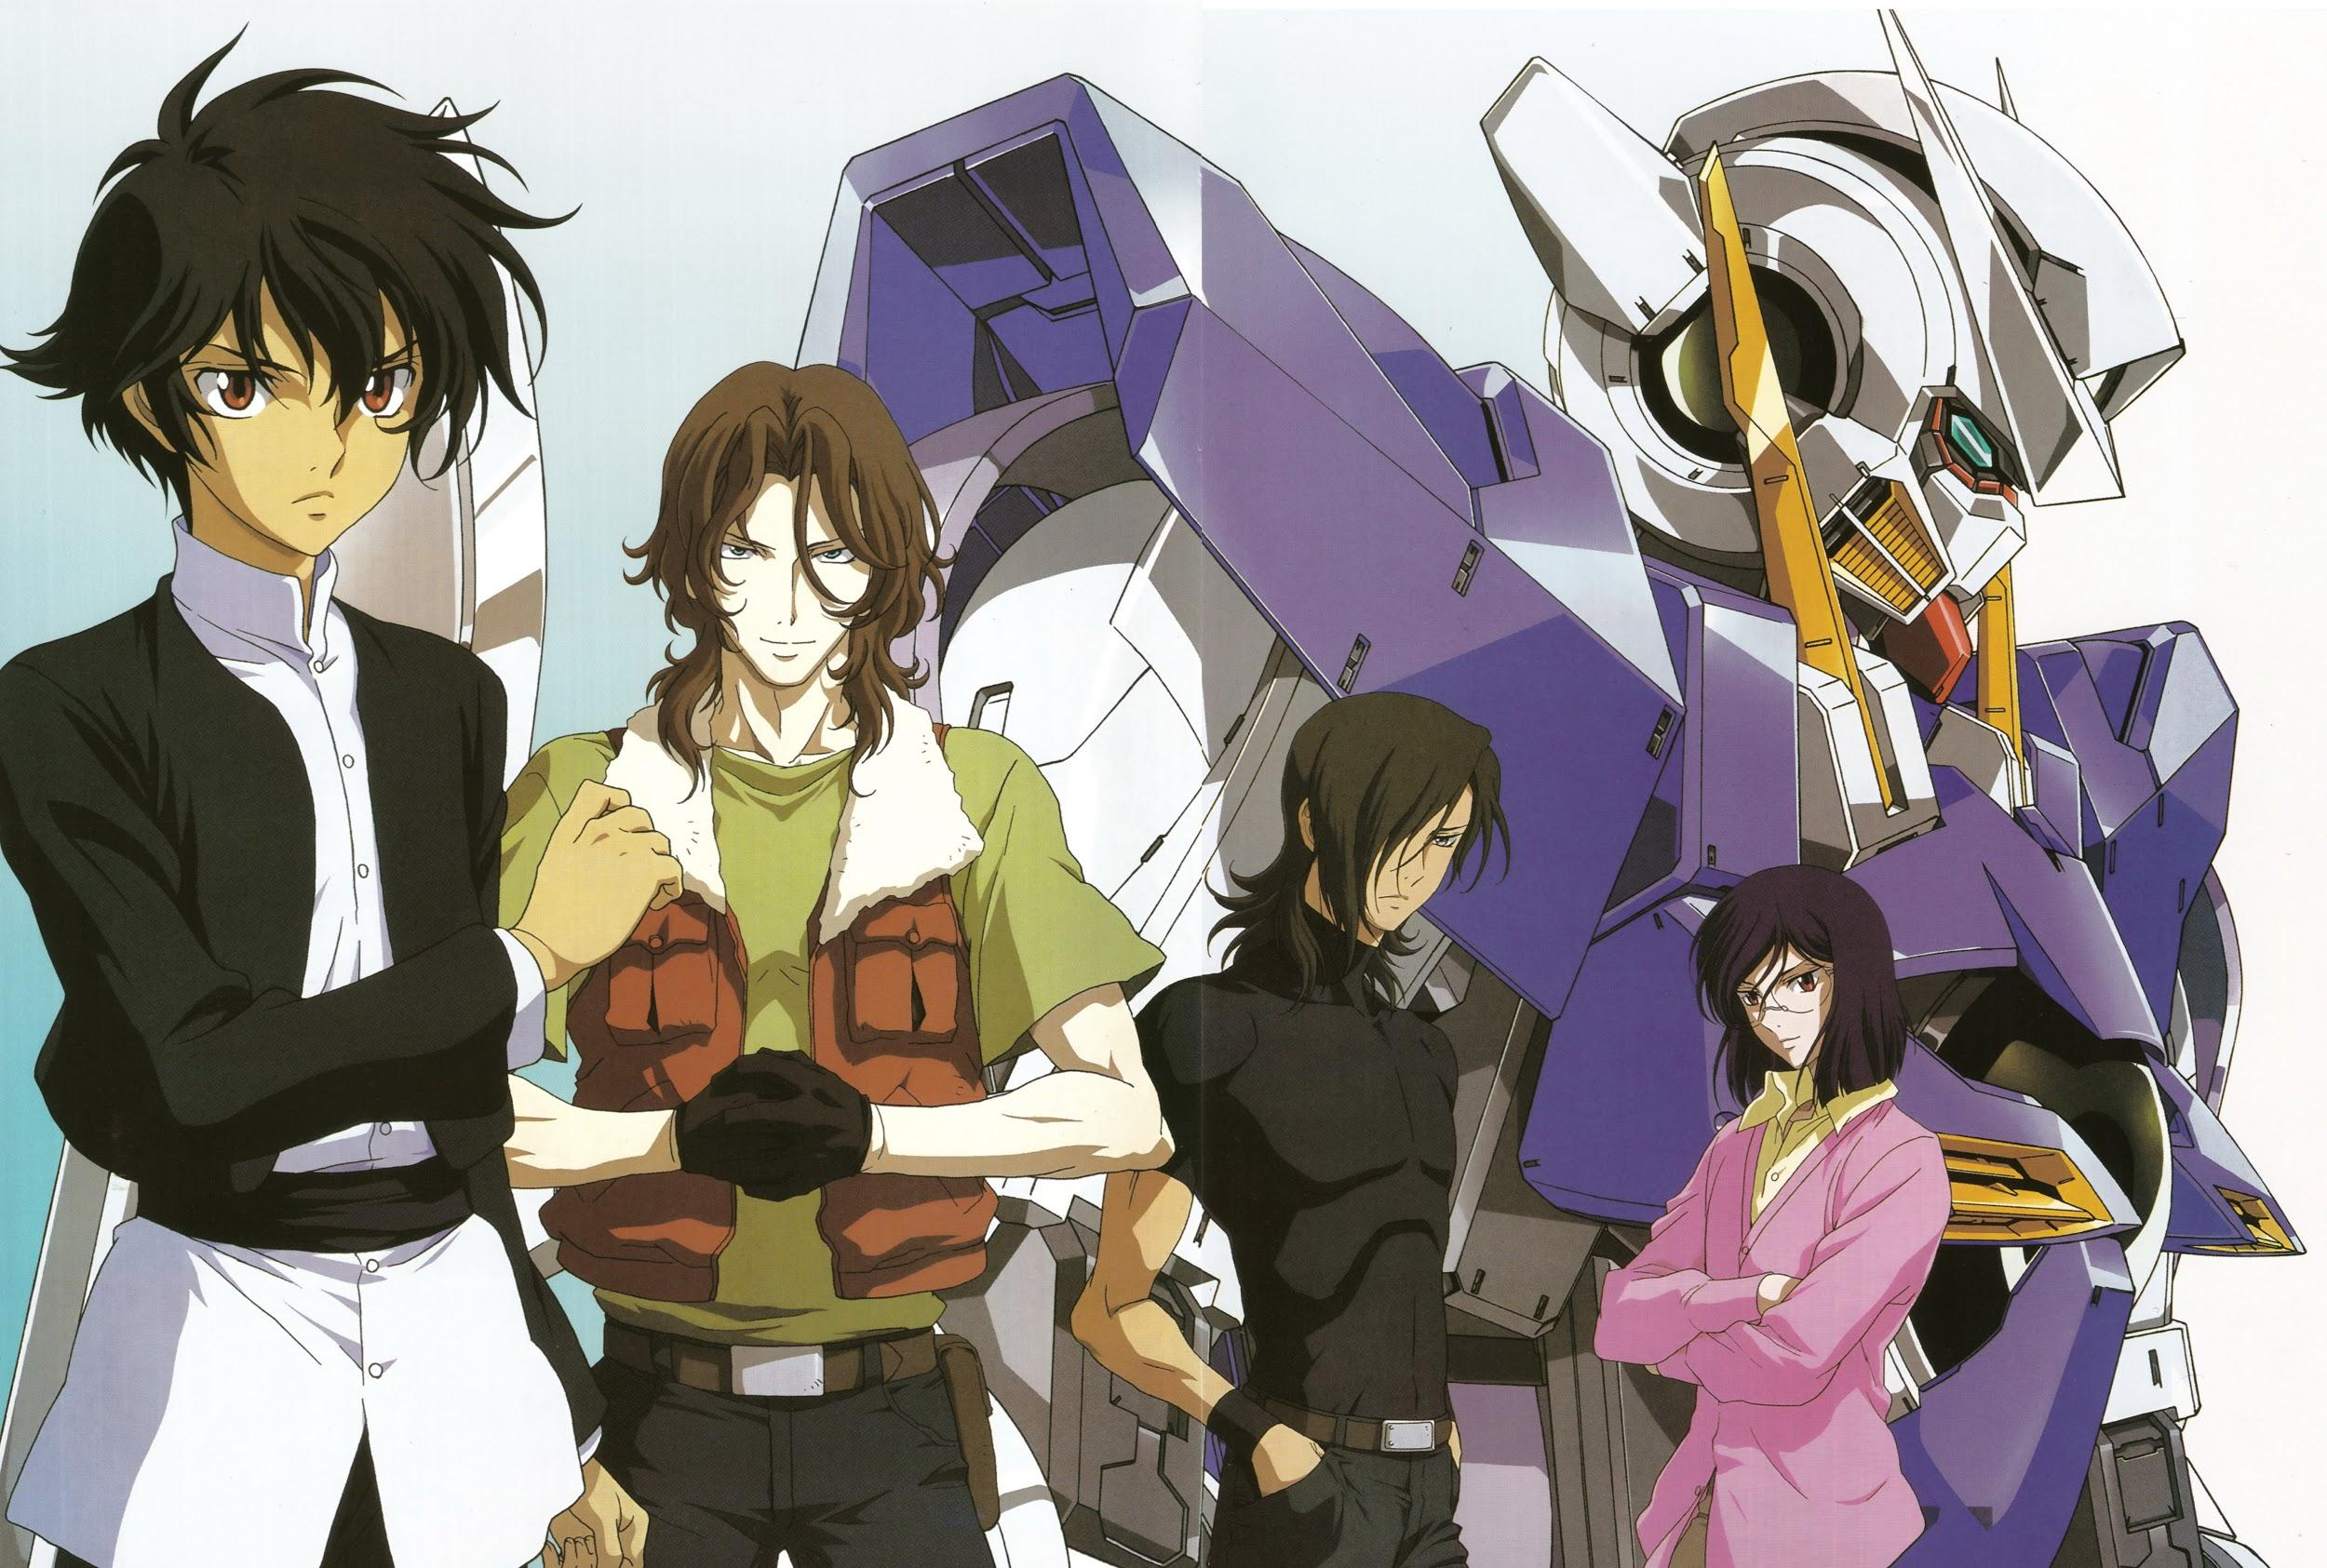 Setsuna, Lockon, Alleluleah, and Tiera from Gundam 00